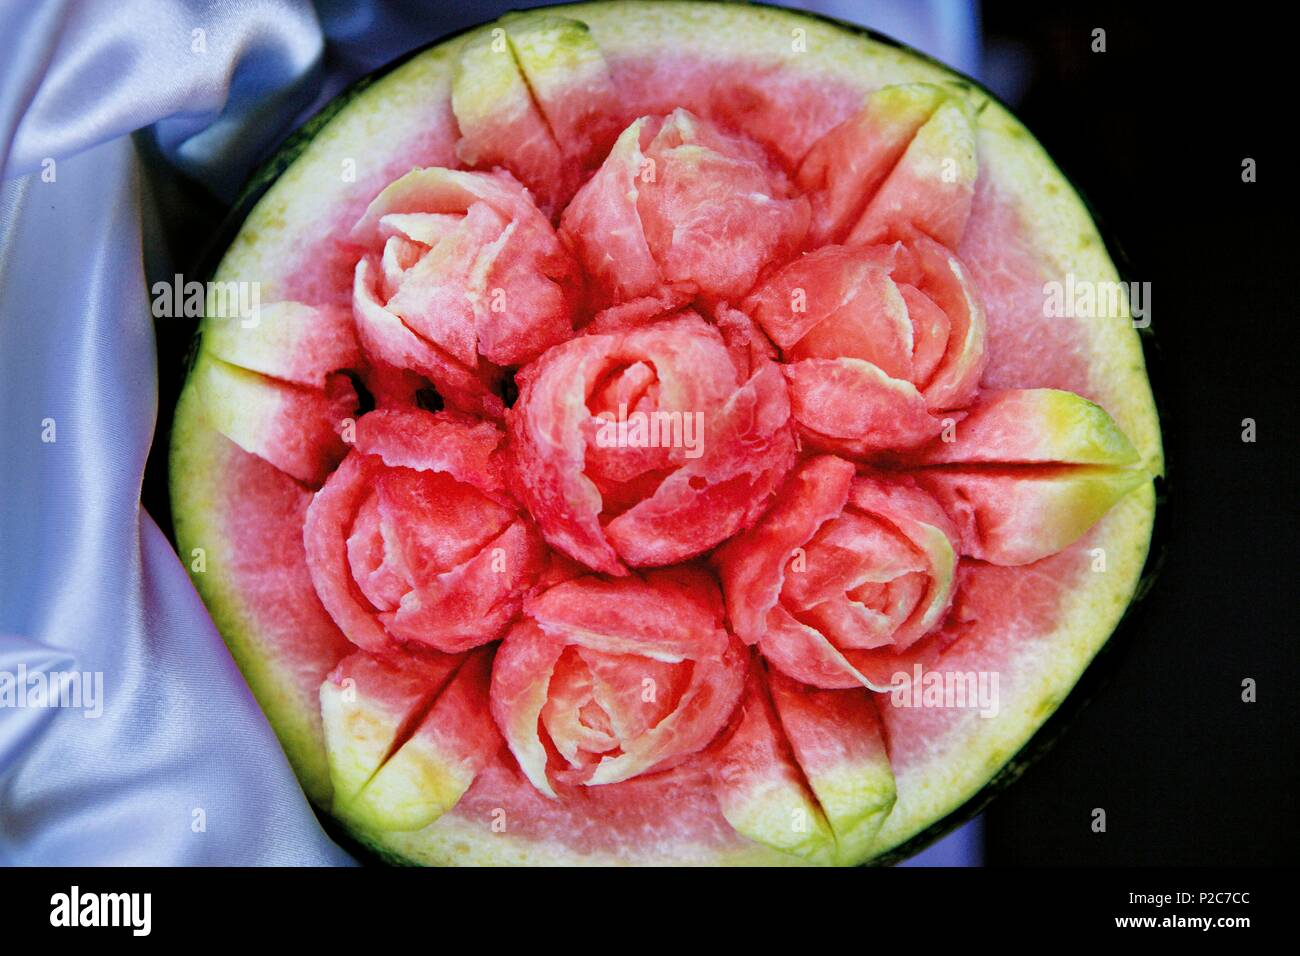 Azerbaijan, Baku, Baku Boulevard, an intricate rose bouquet out of a watermelon carved for Norouz (new year in ancient persia) - Stock Image